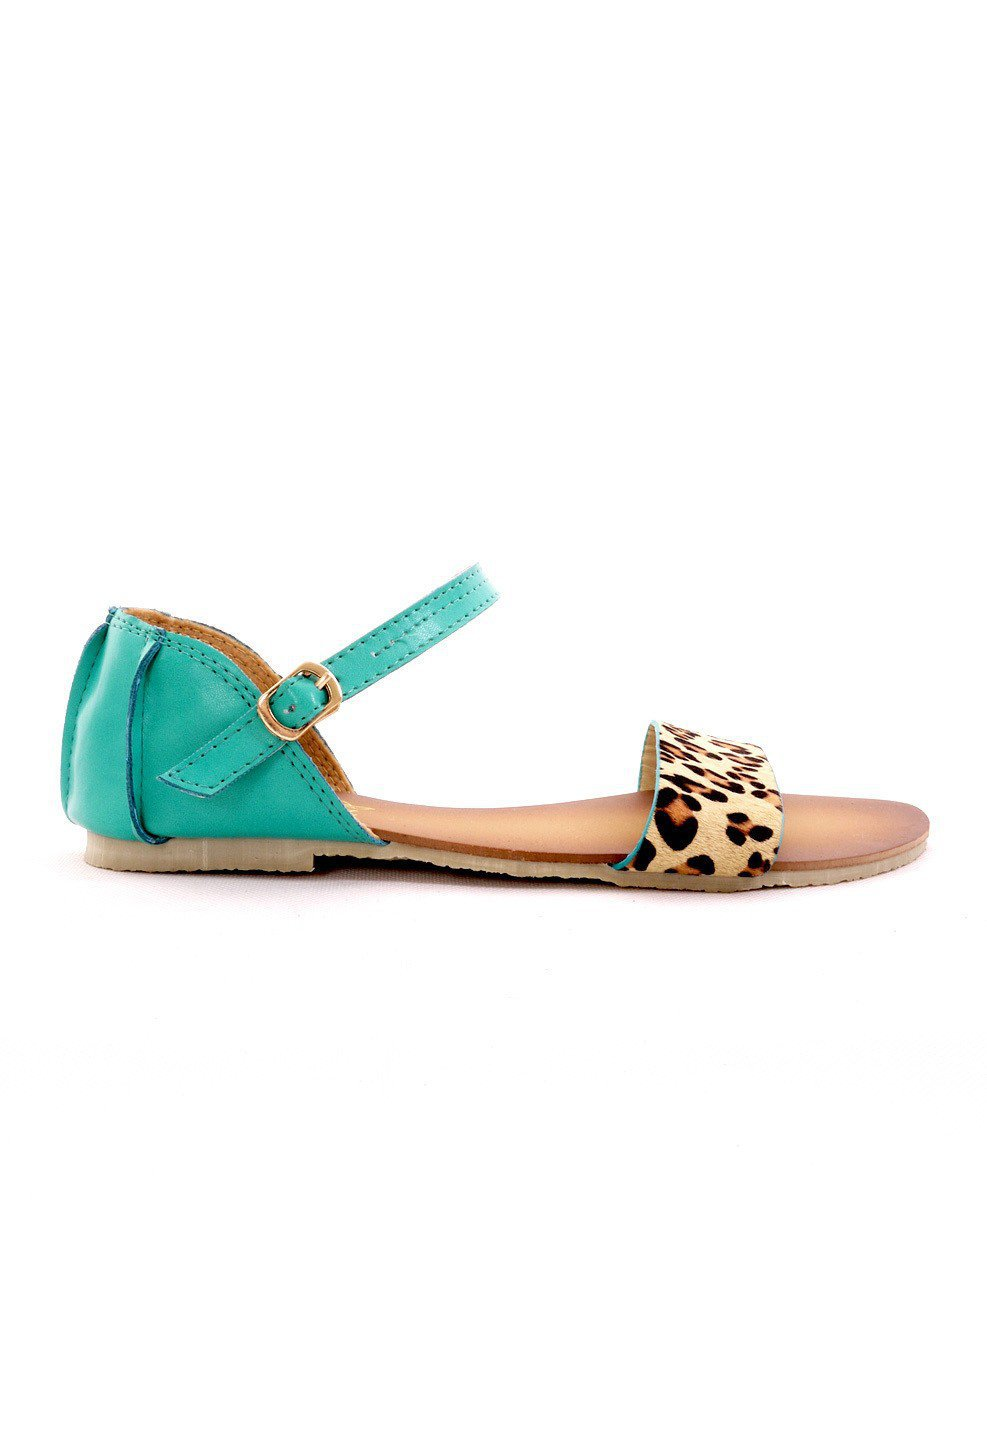 Turquoise Leopard Strappy Sandal with Side Buckle